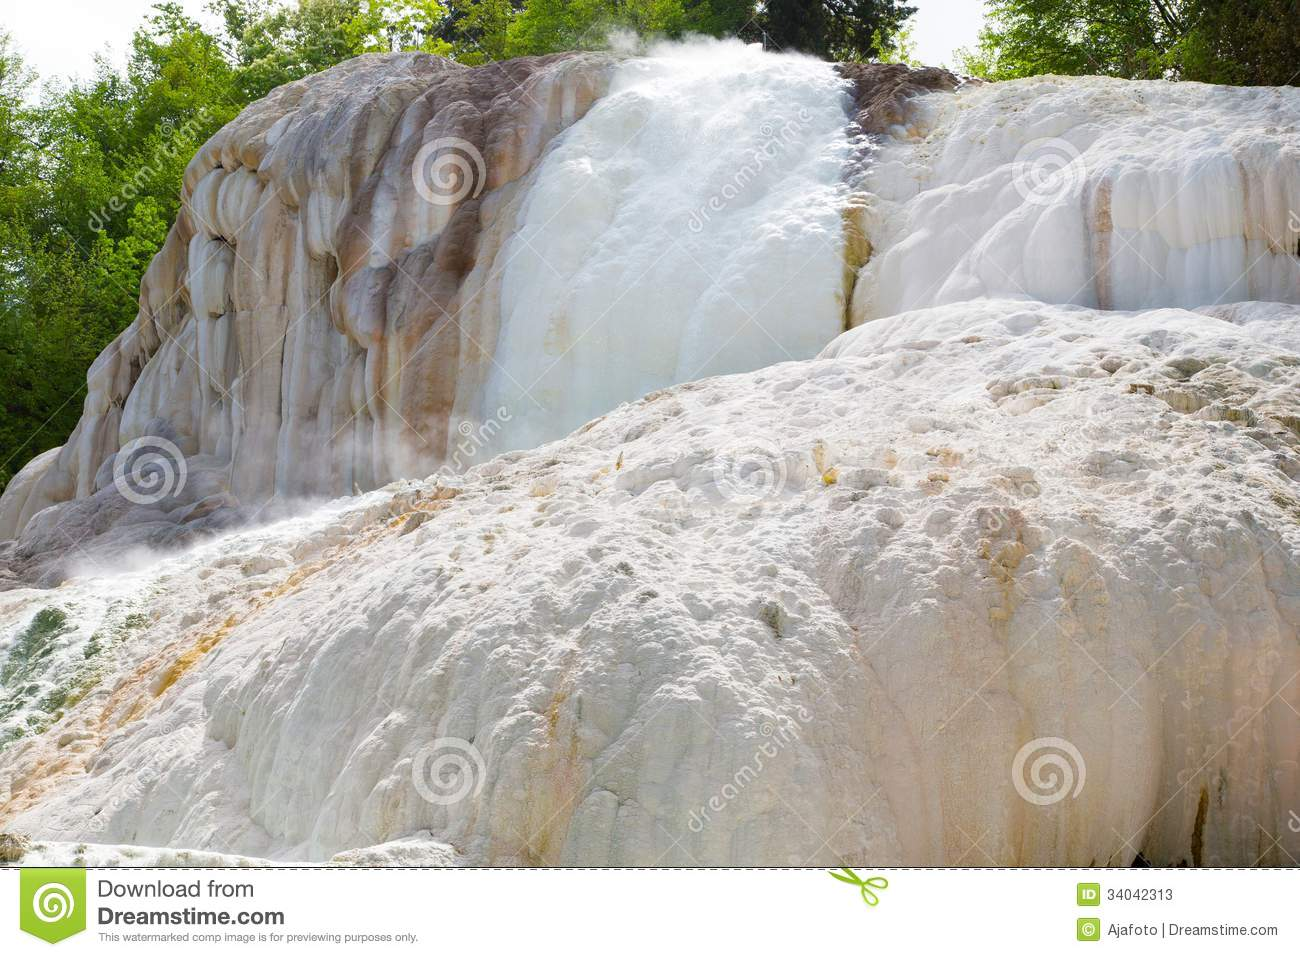 Hot springs in tuscany enjoy natural hot springs outdoors in bagni